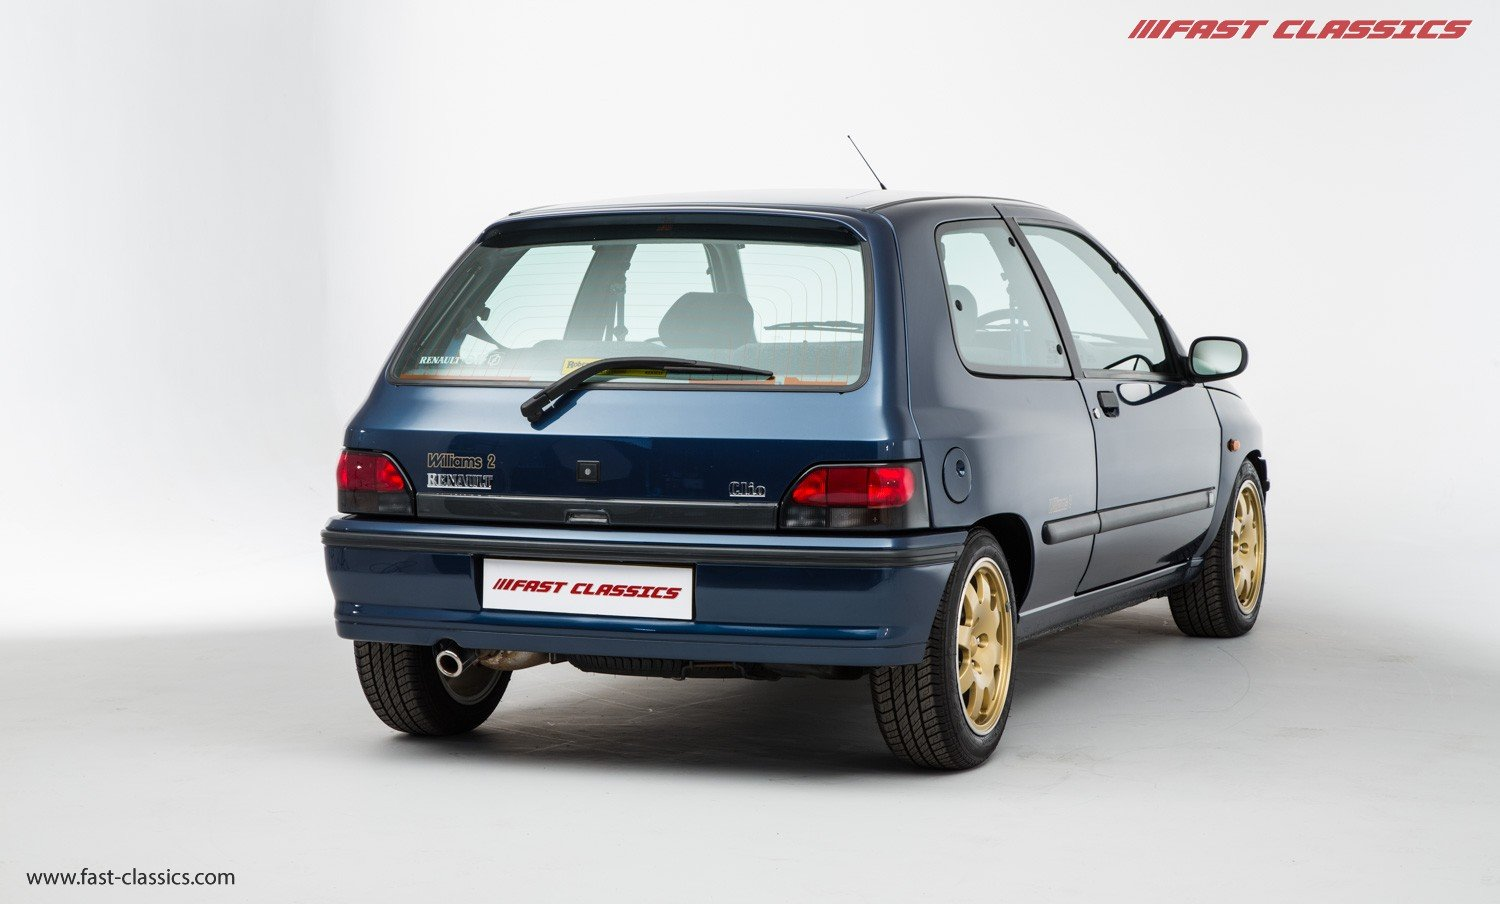 1995 RENAULT CLIO WILLIAMS 2 // ONLY 6K MILES // TIME WARP CONDIT SOLD (picture 3 of 6)